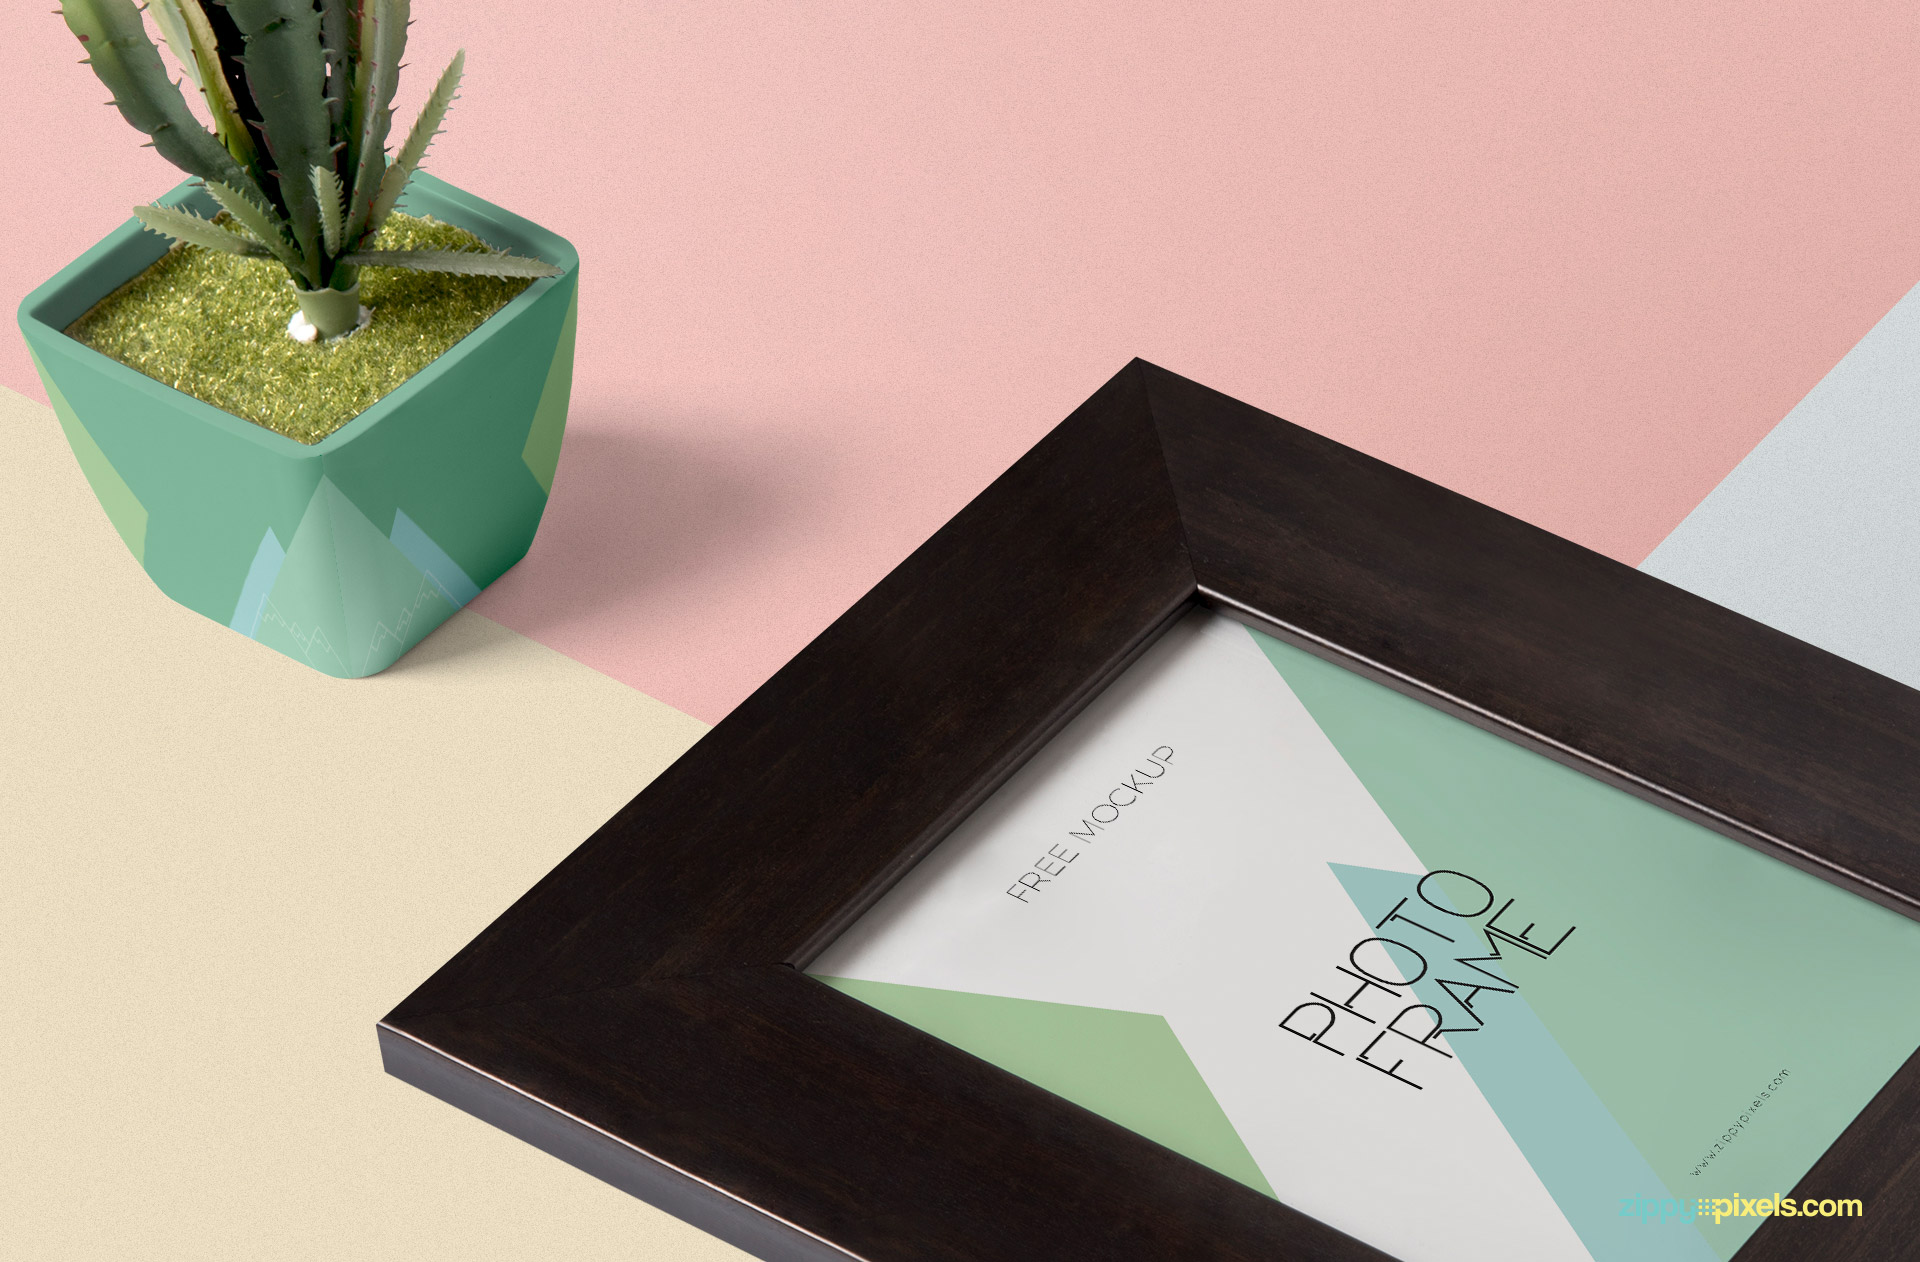 Customizable plant pot is placed beside frame mockup.